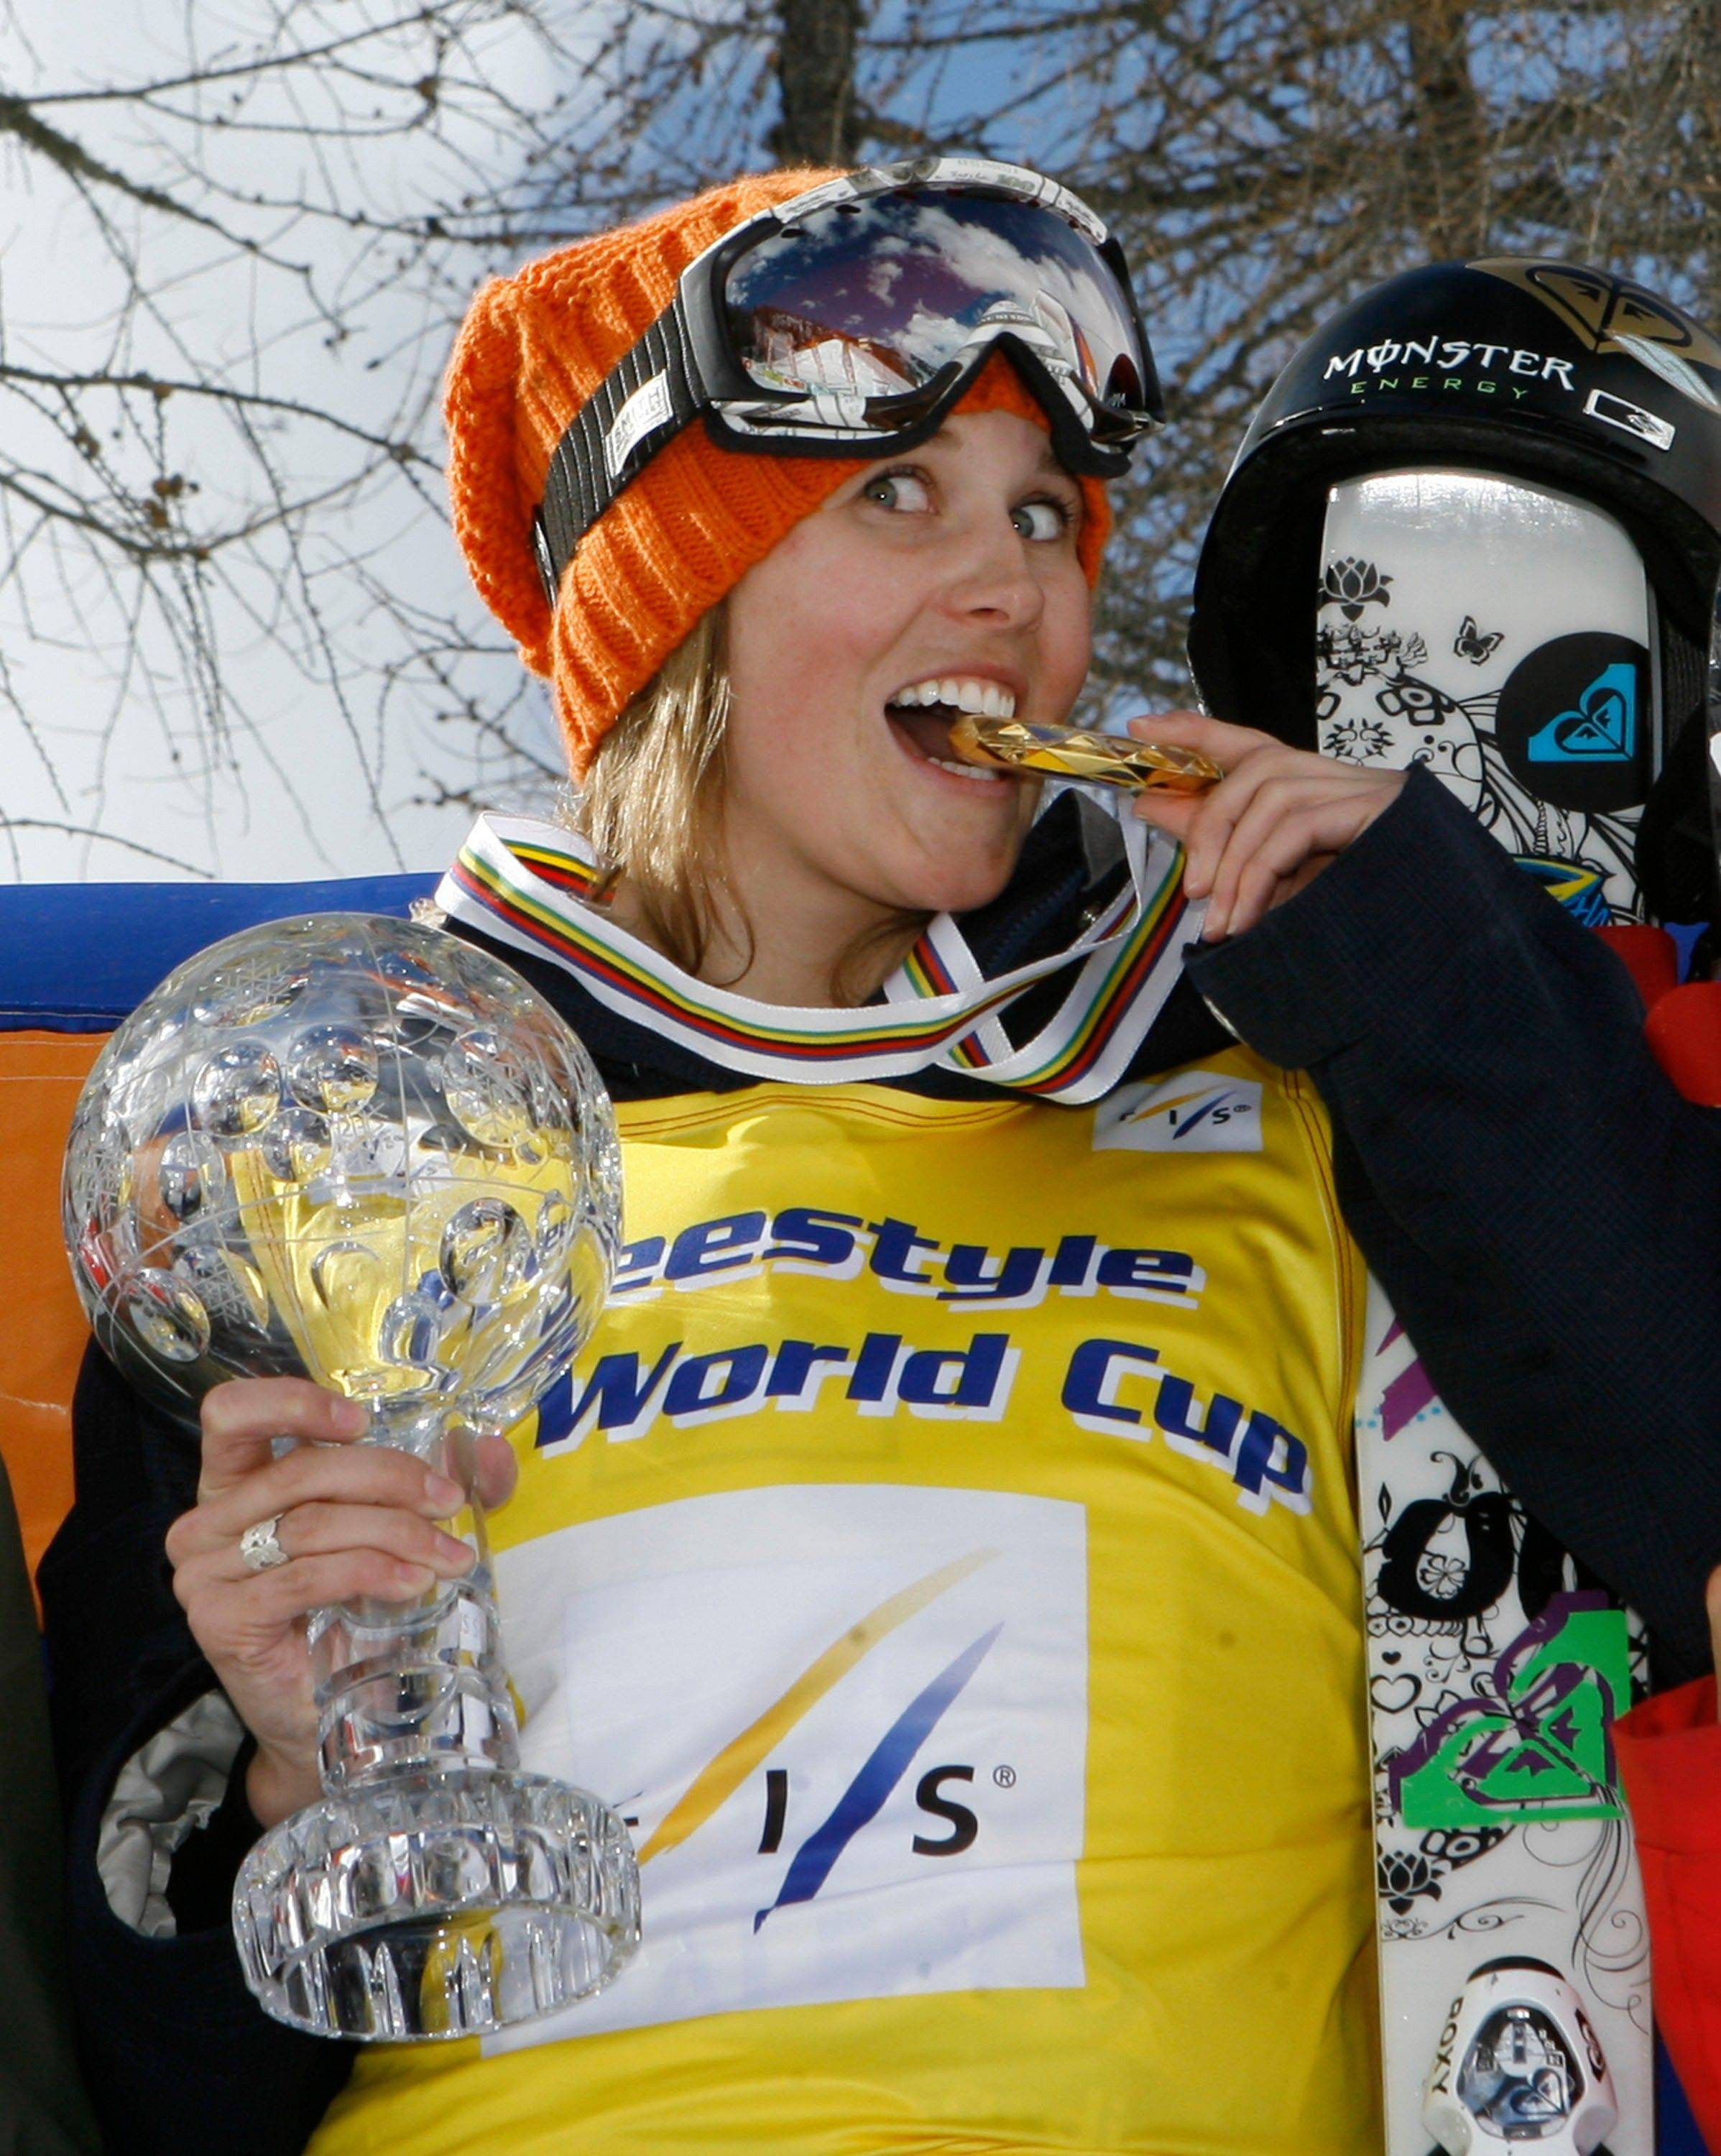 Sarah Burke celebrates on the podium after winning the women's half-pipe freestyle title at the World Cup finals in Valmalenco, Italy. Burke died Thursday, nine days after crashing at the bottom of the superpipe during a training run in Utah. She was 29. Burke was injured Jan. 11 while training at a personal sponsor event at the Park City Mountain resort.